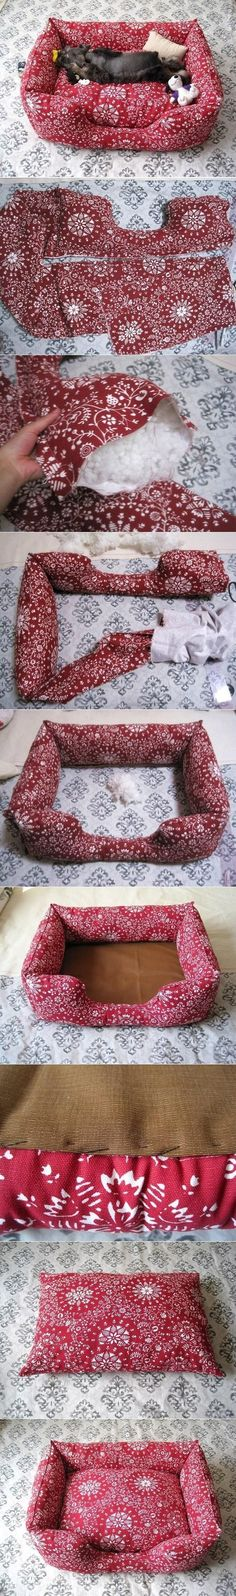 DIY Fabric Pet Sofa DIY Fabric Pet Sofa